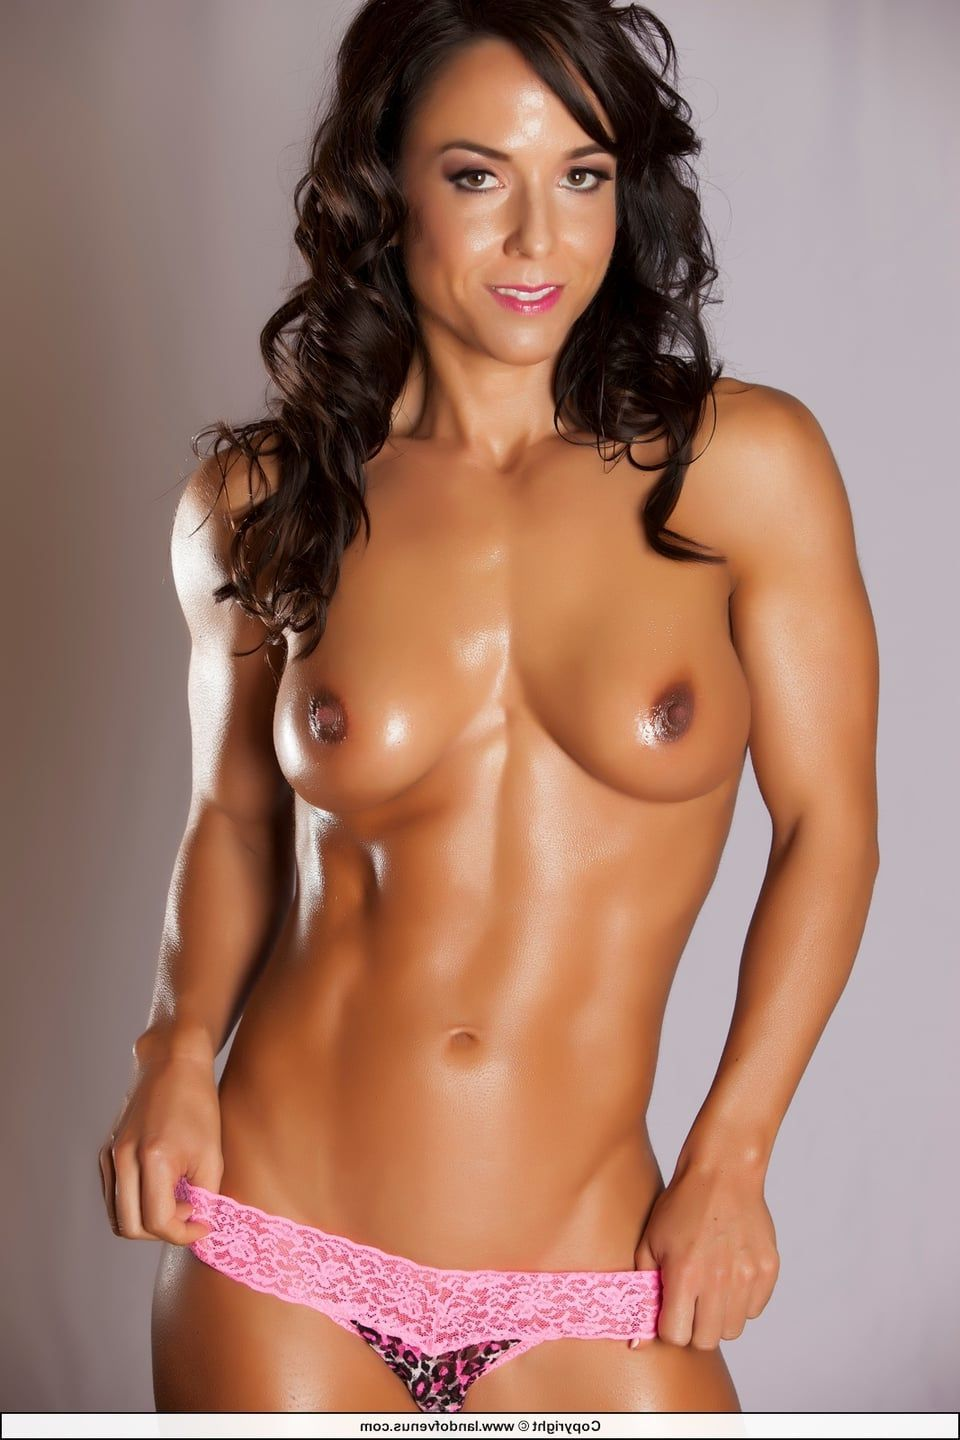 Nude Female Fitness Models